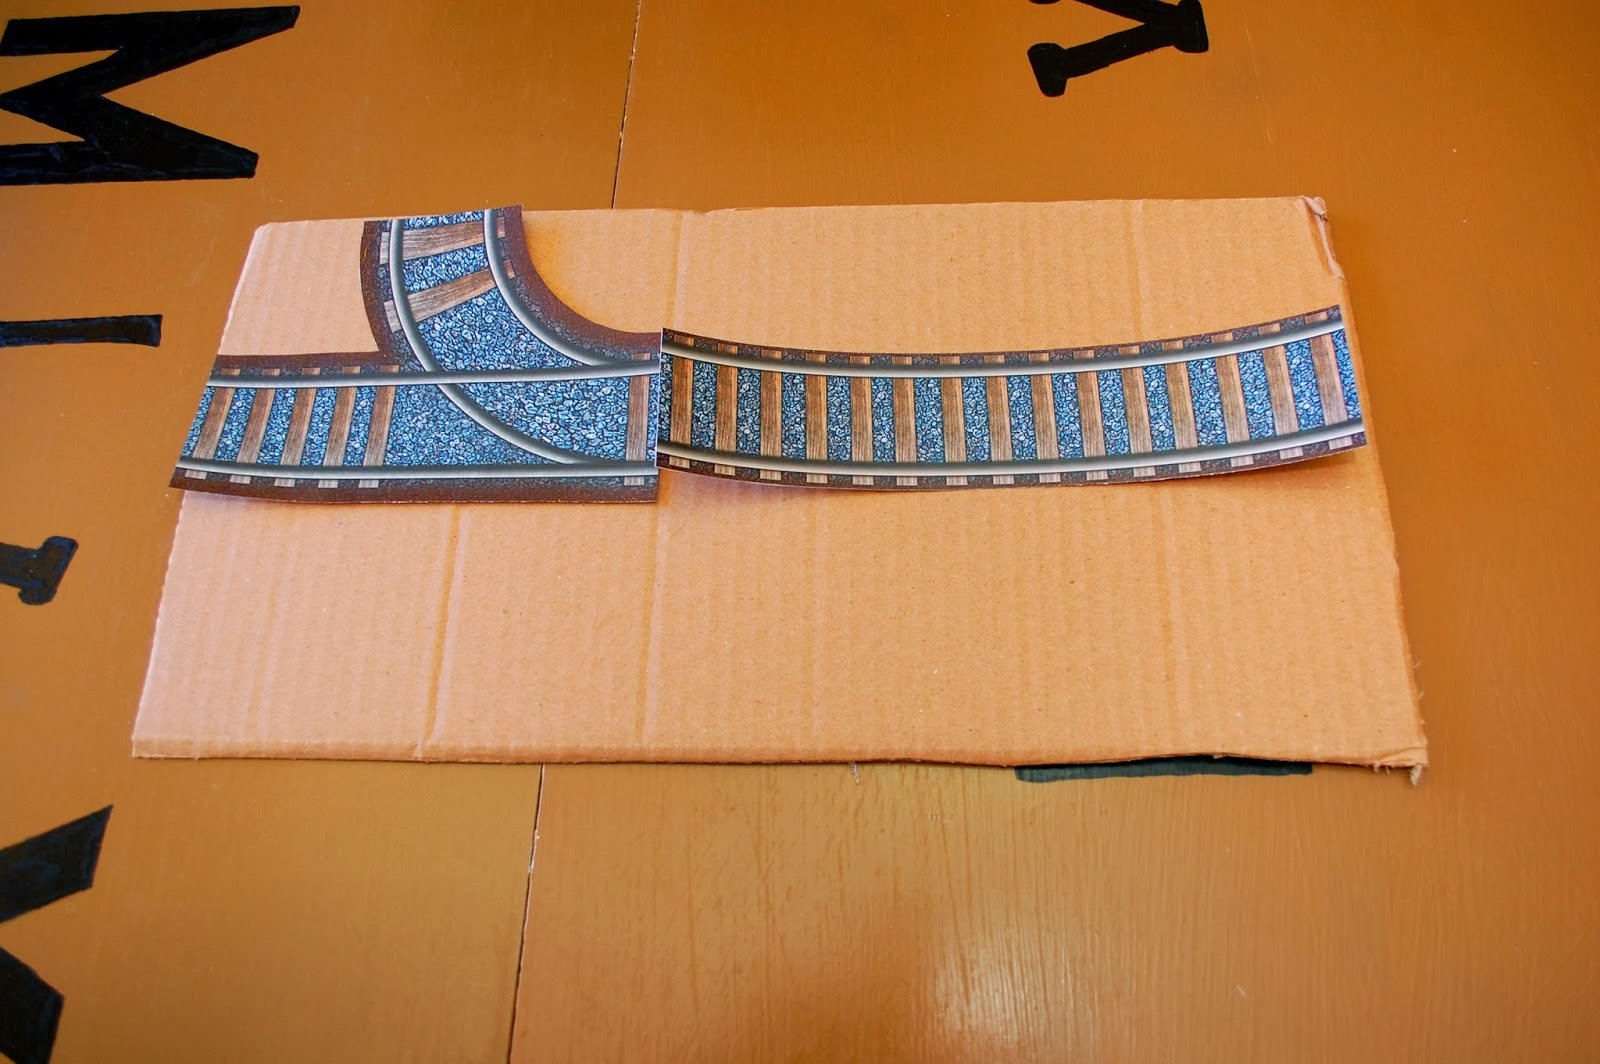 paper train tracks laid out on cardboard panel